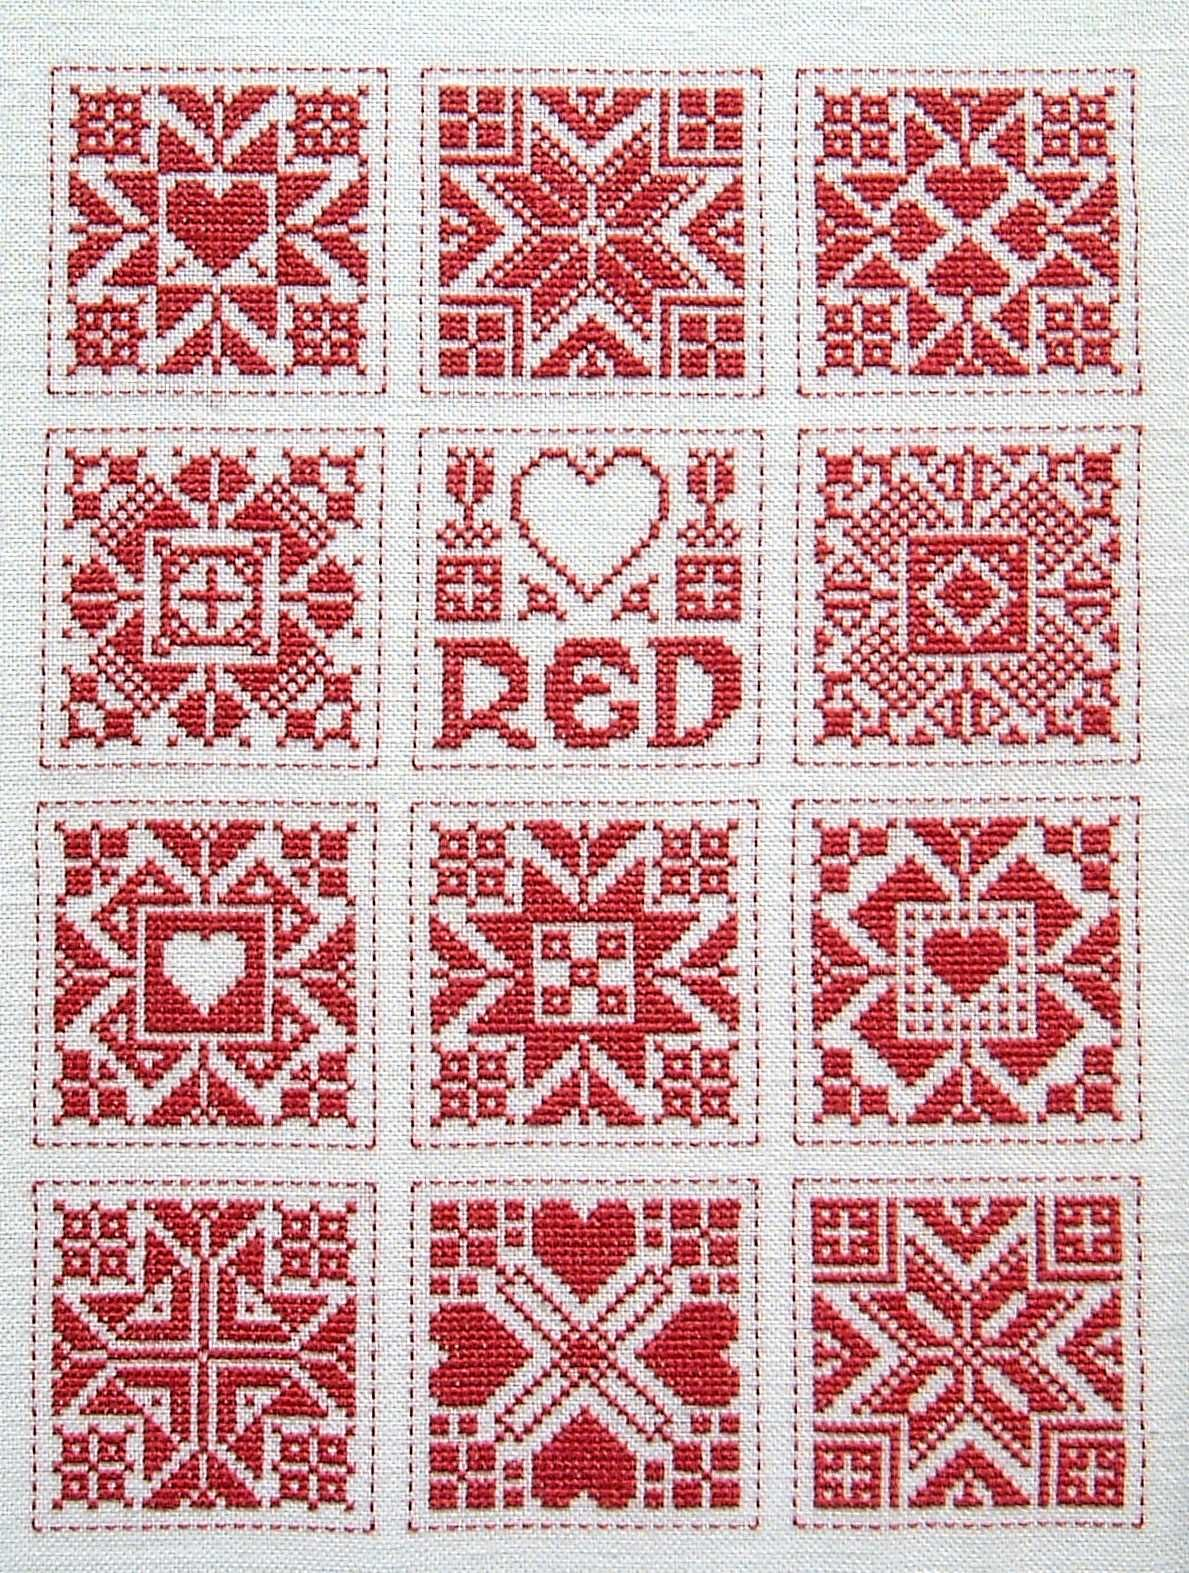 Scandinavian Red White Tom Pudding Designs Cross Stitch Designs Cross Stitch Samplers Cross Stitch Charts